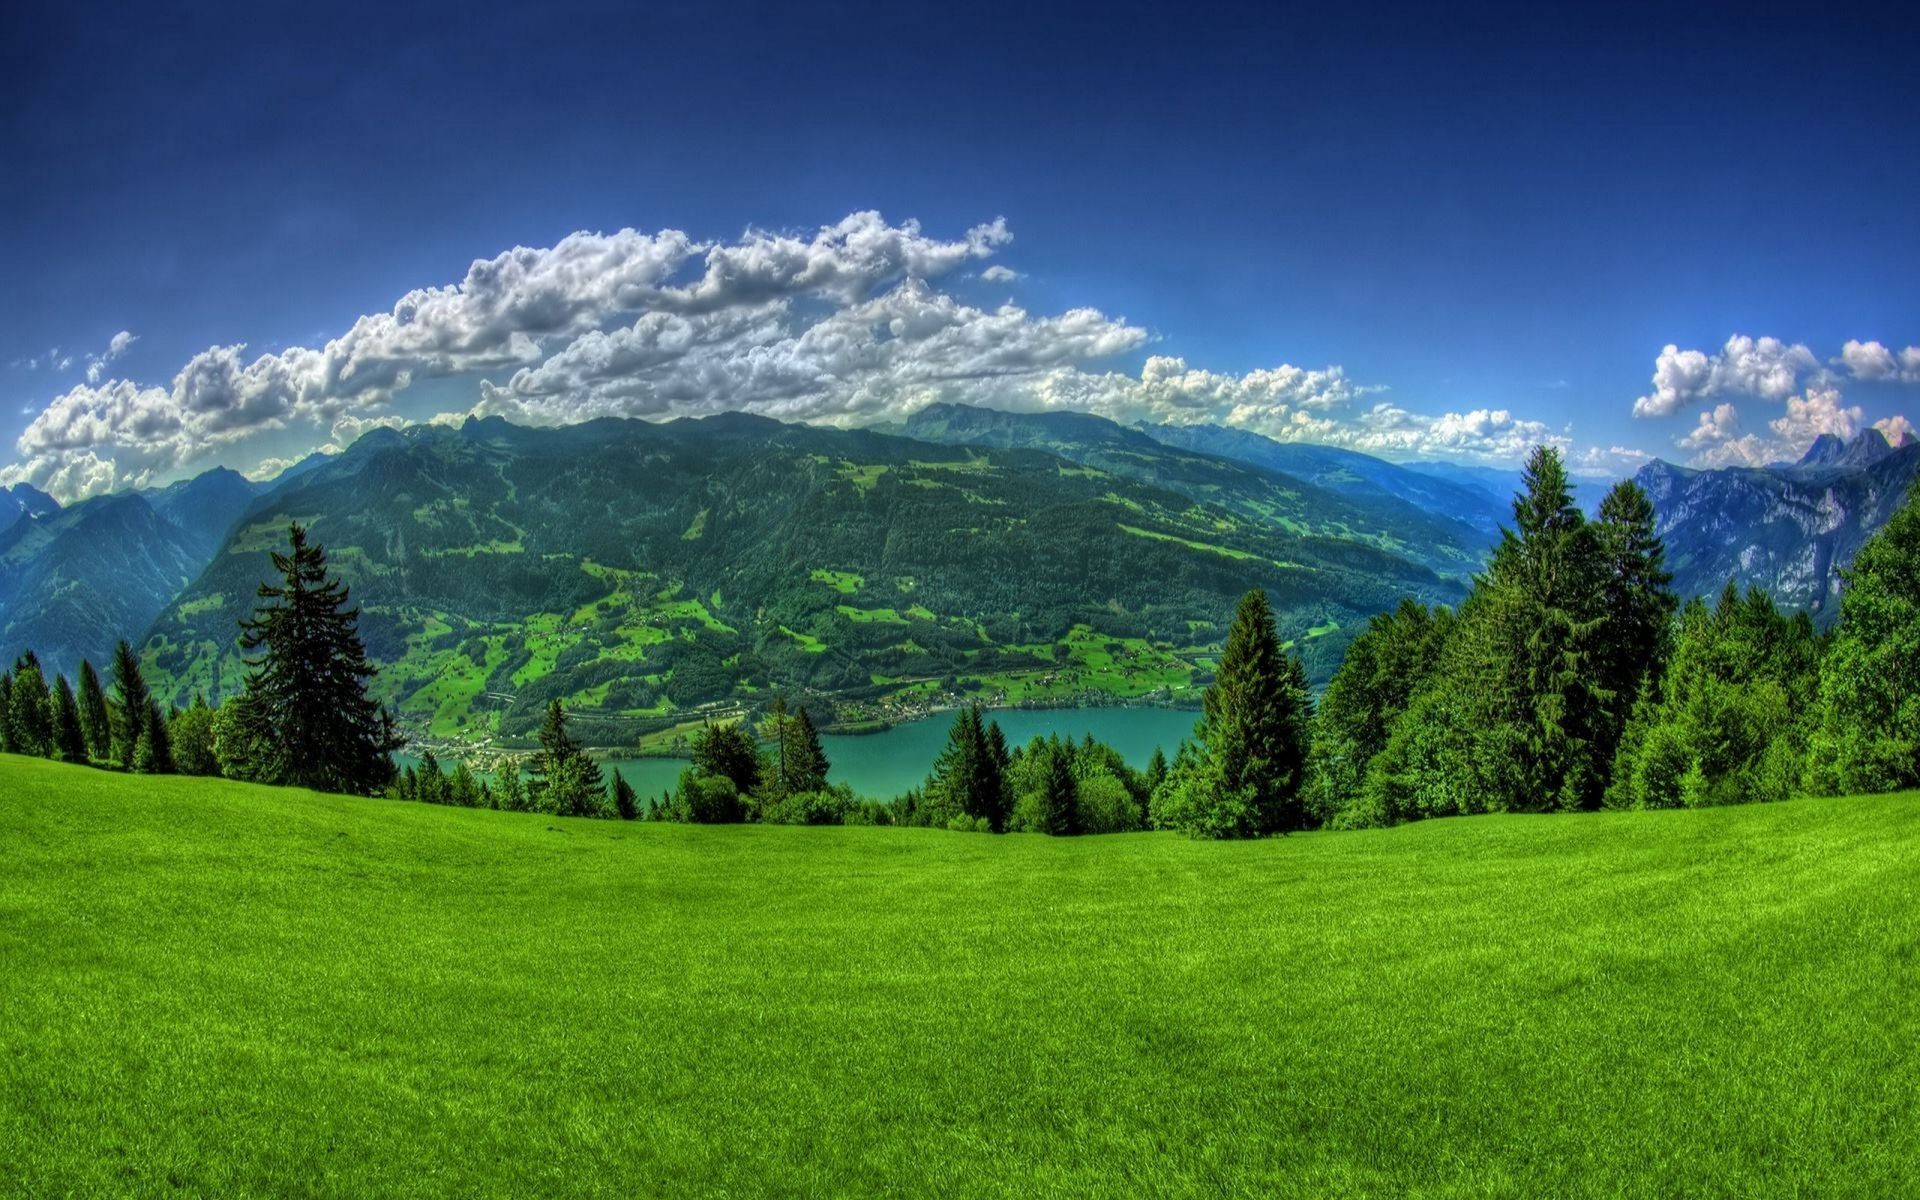 Lawn trees landscape mountains sky clouds